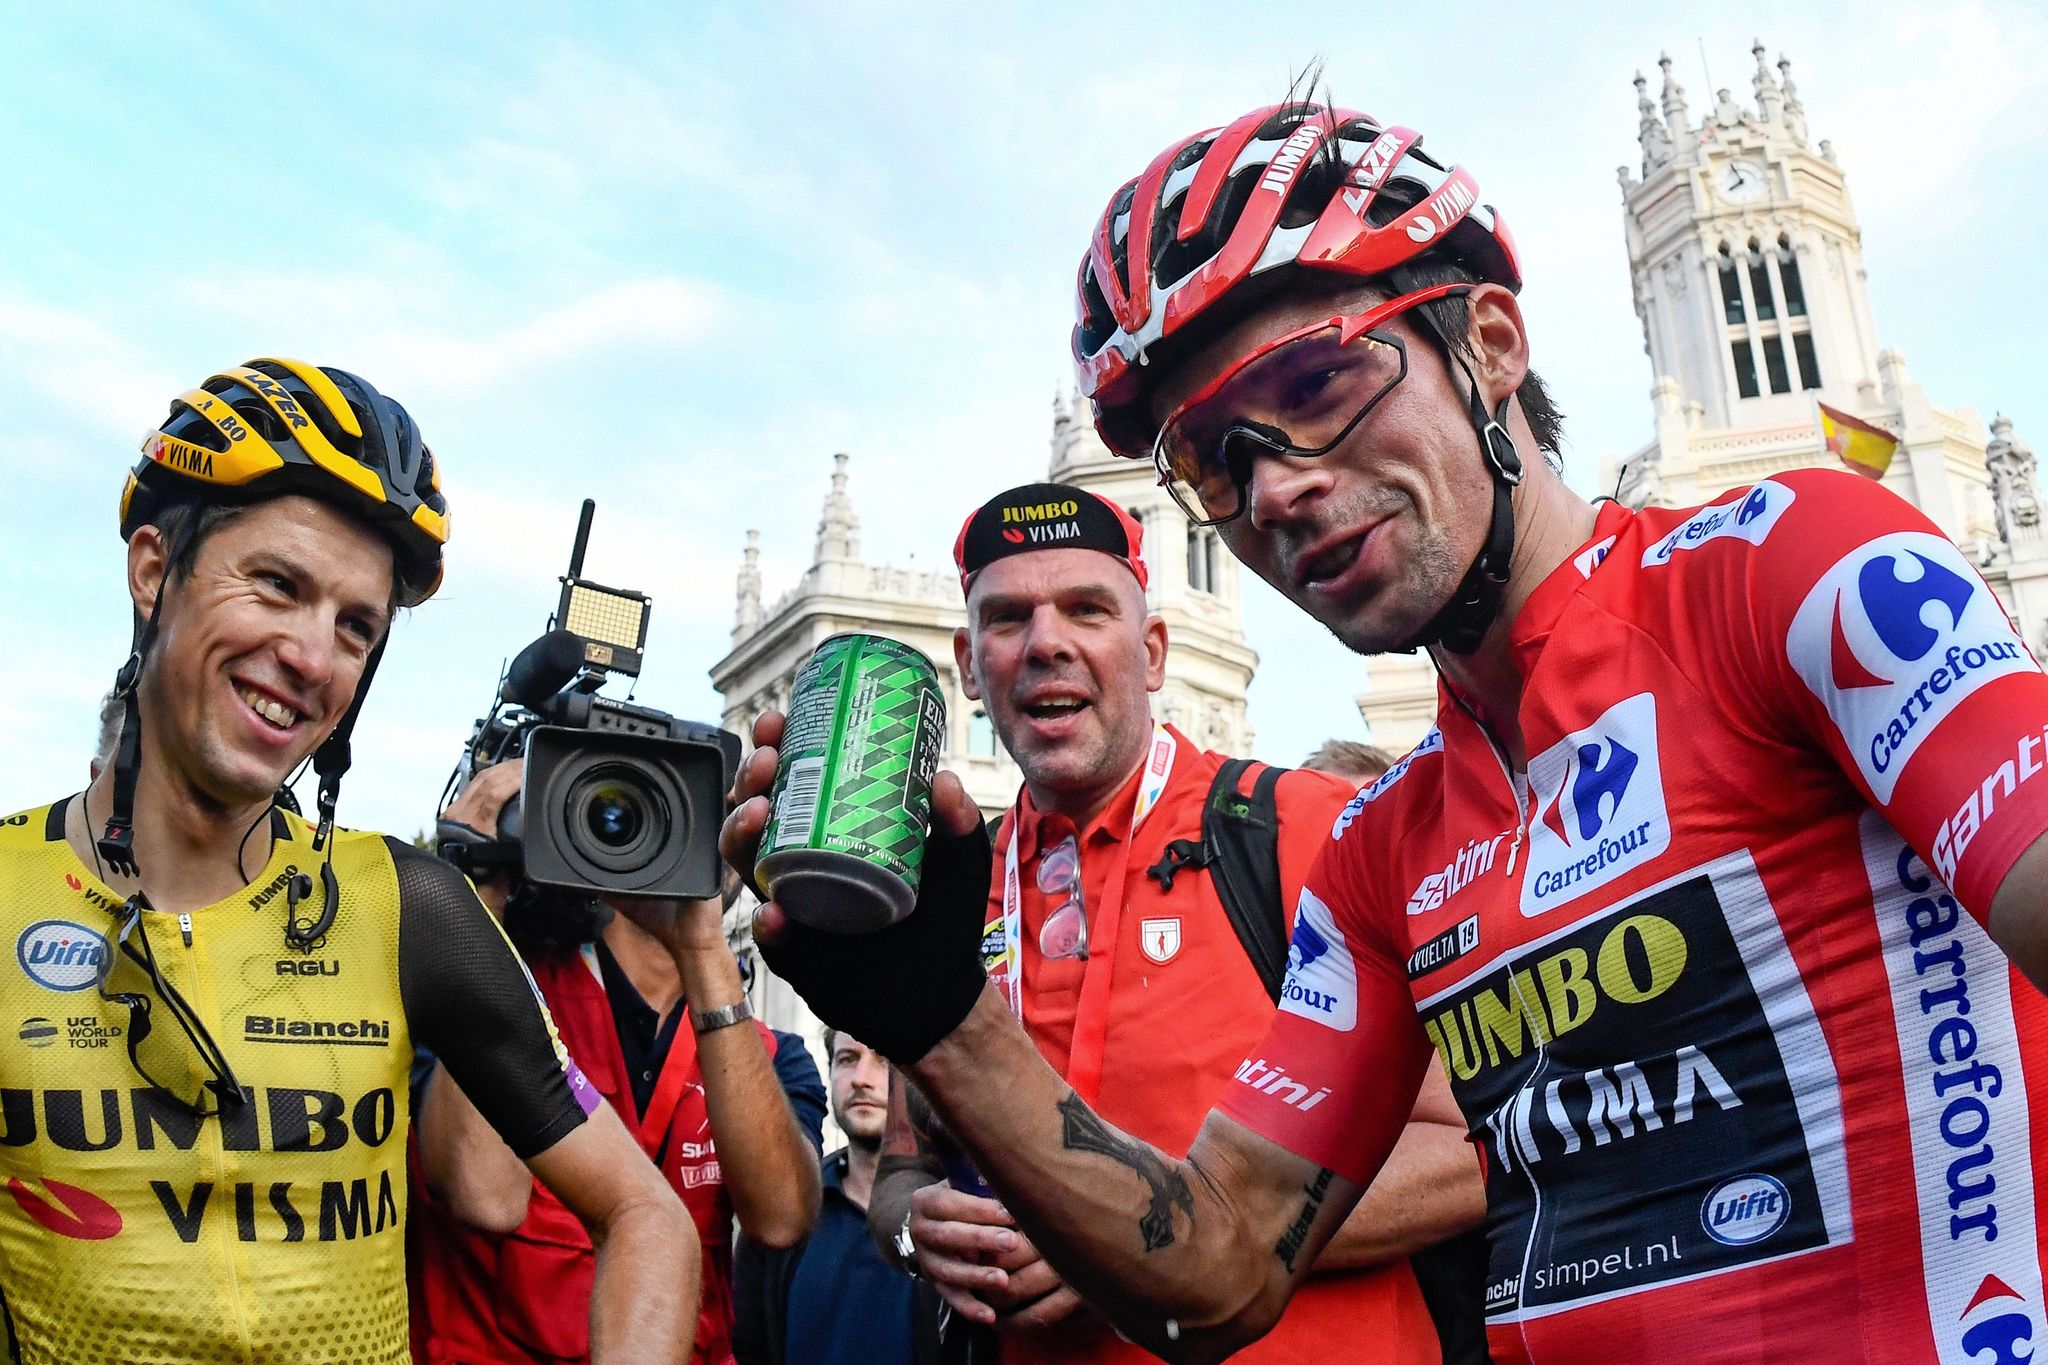 Team Jumbo rider Slovenias Primoz <HIT>Roglic</HIT> (R) celebrates with his teammates after the 21st and last stage of the 2019 La Vuelta cycling Tour of Spain, a 106,6 km race from Fuenlabrada to Madrid on September 15, 2019. (Photo by OSCAR DEL POZO / AFP)